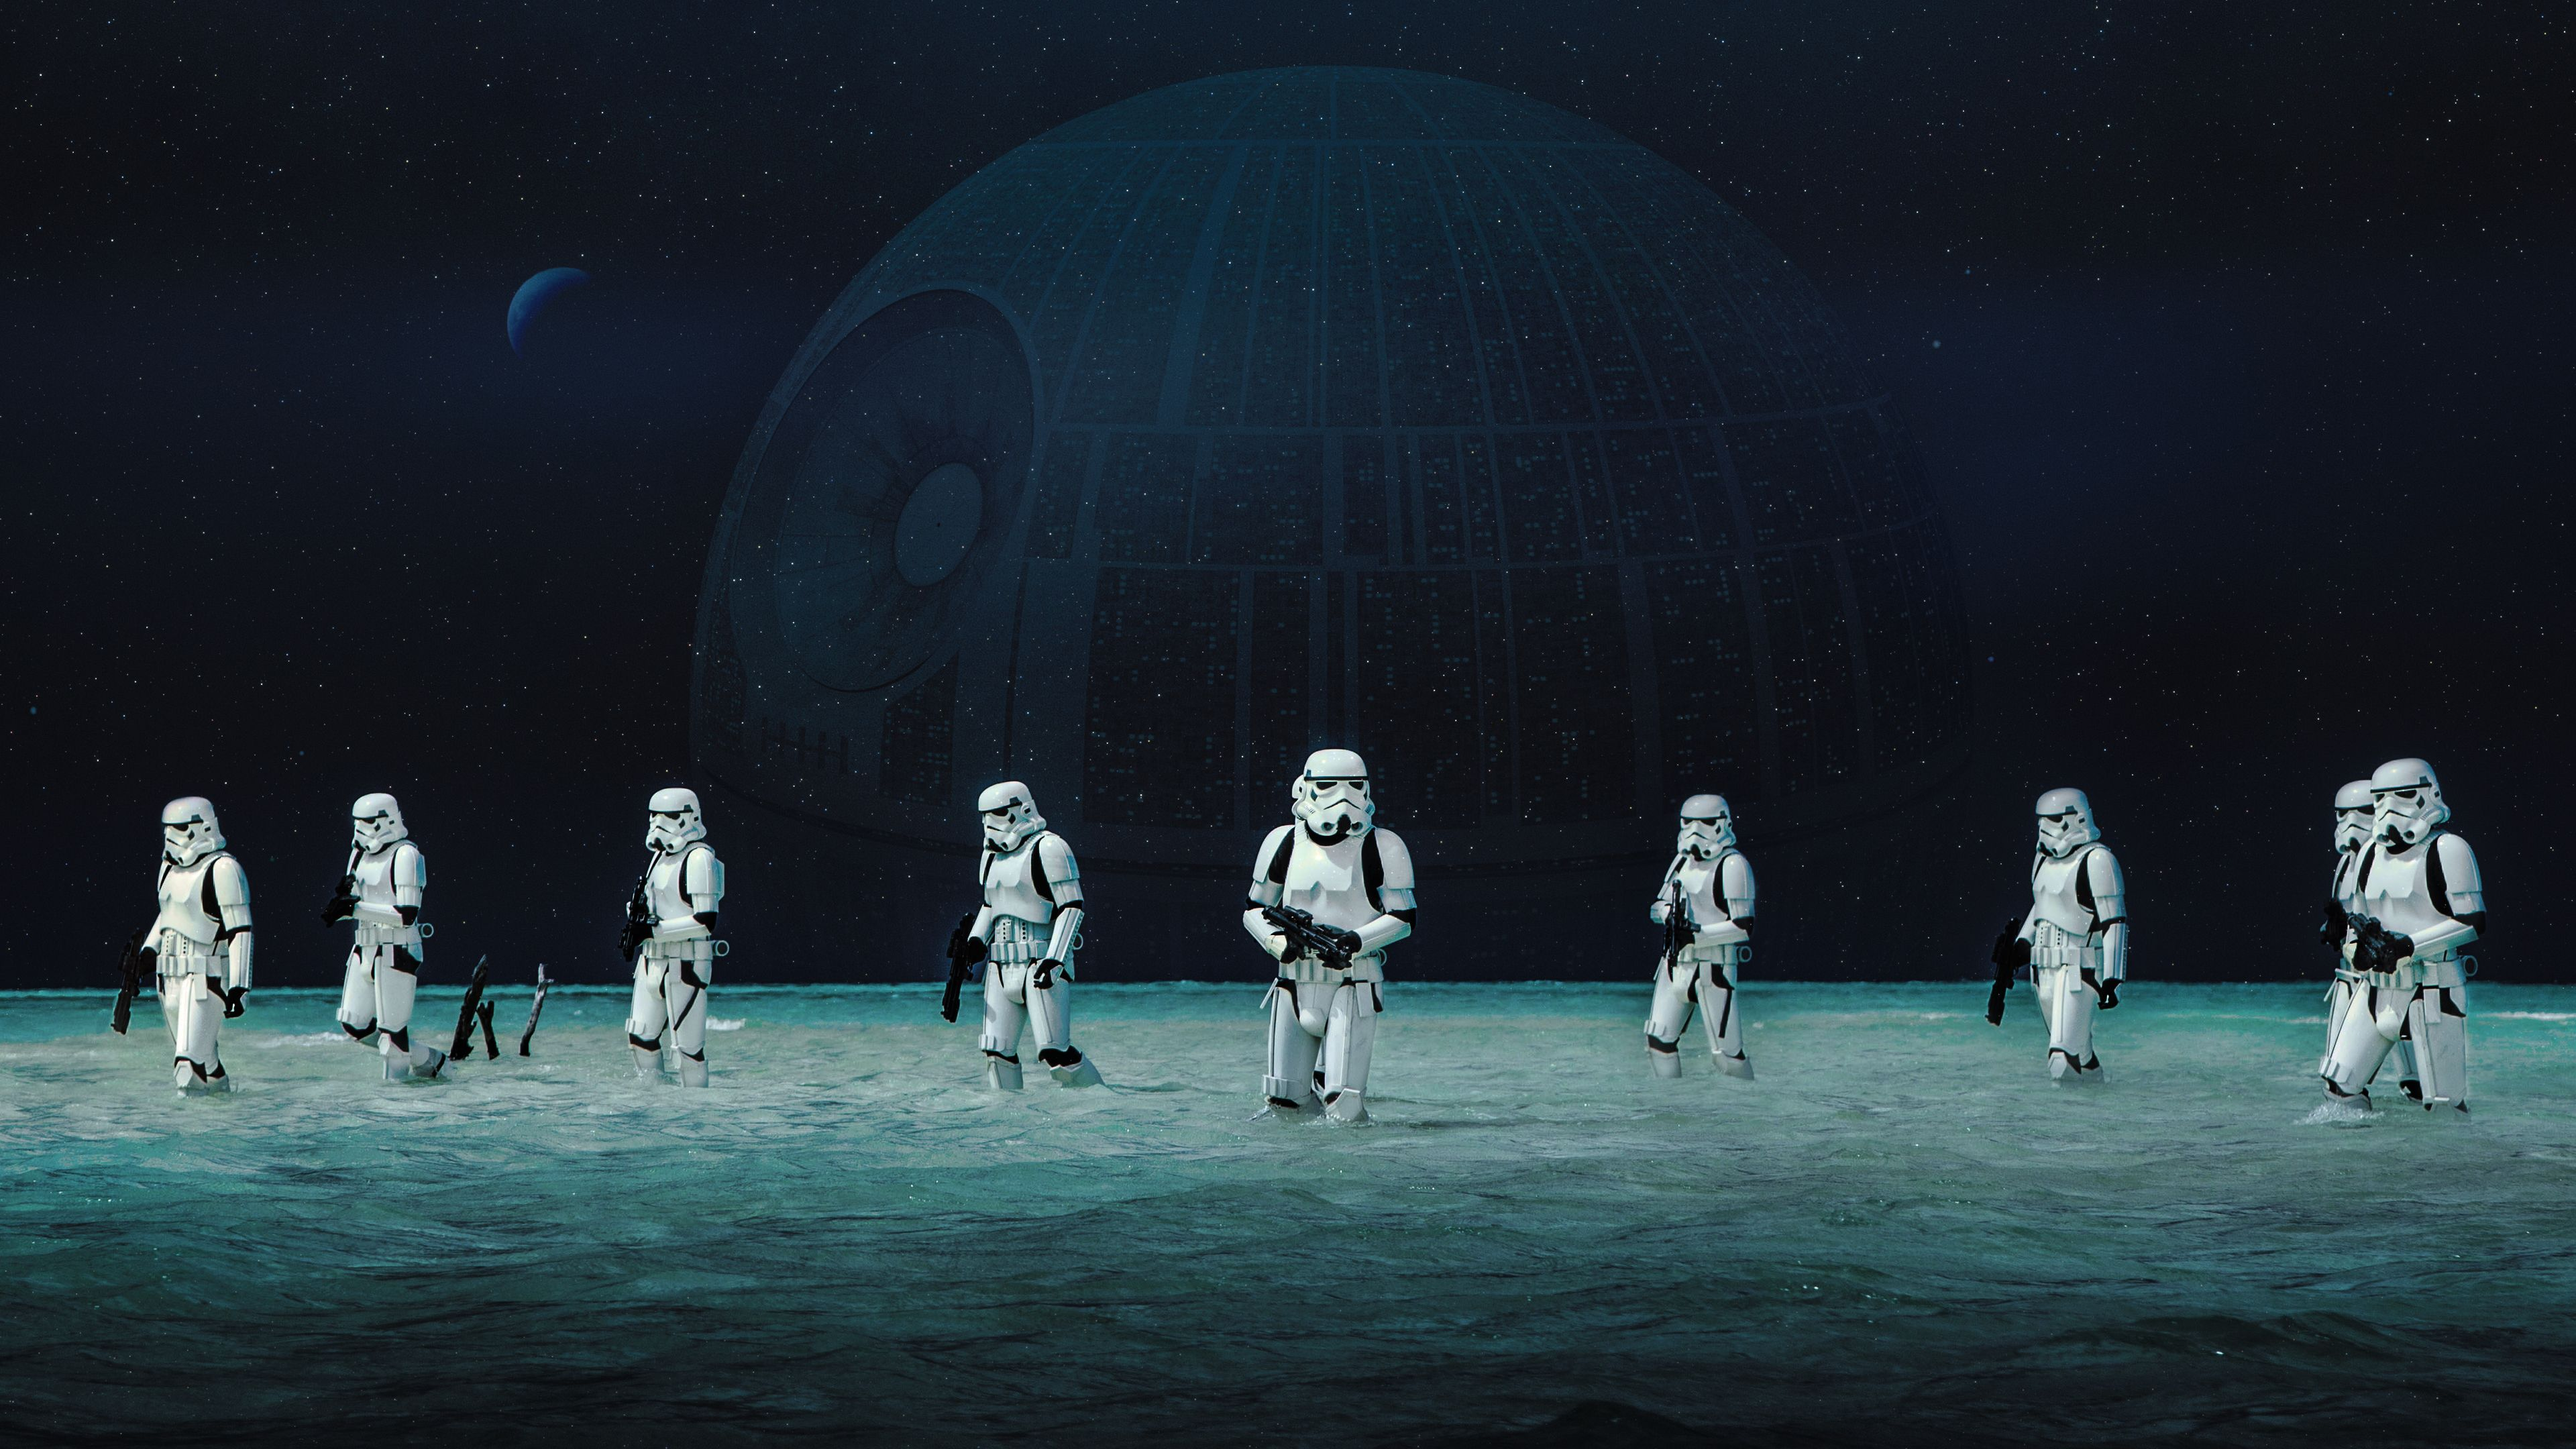 Rogue One Wallpapers Top Free Rogue One Backgrounds